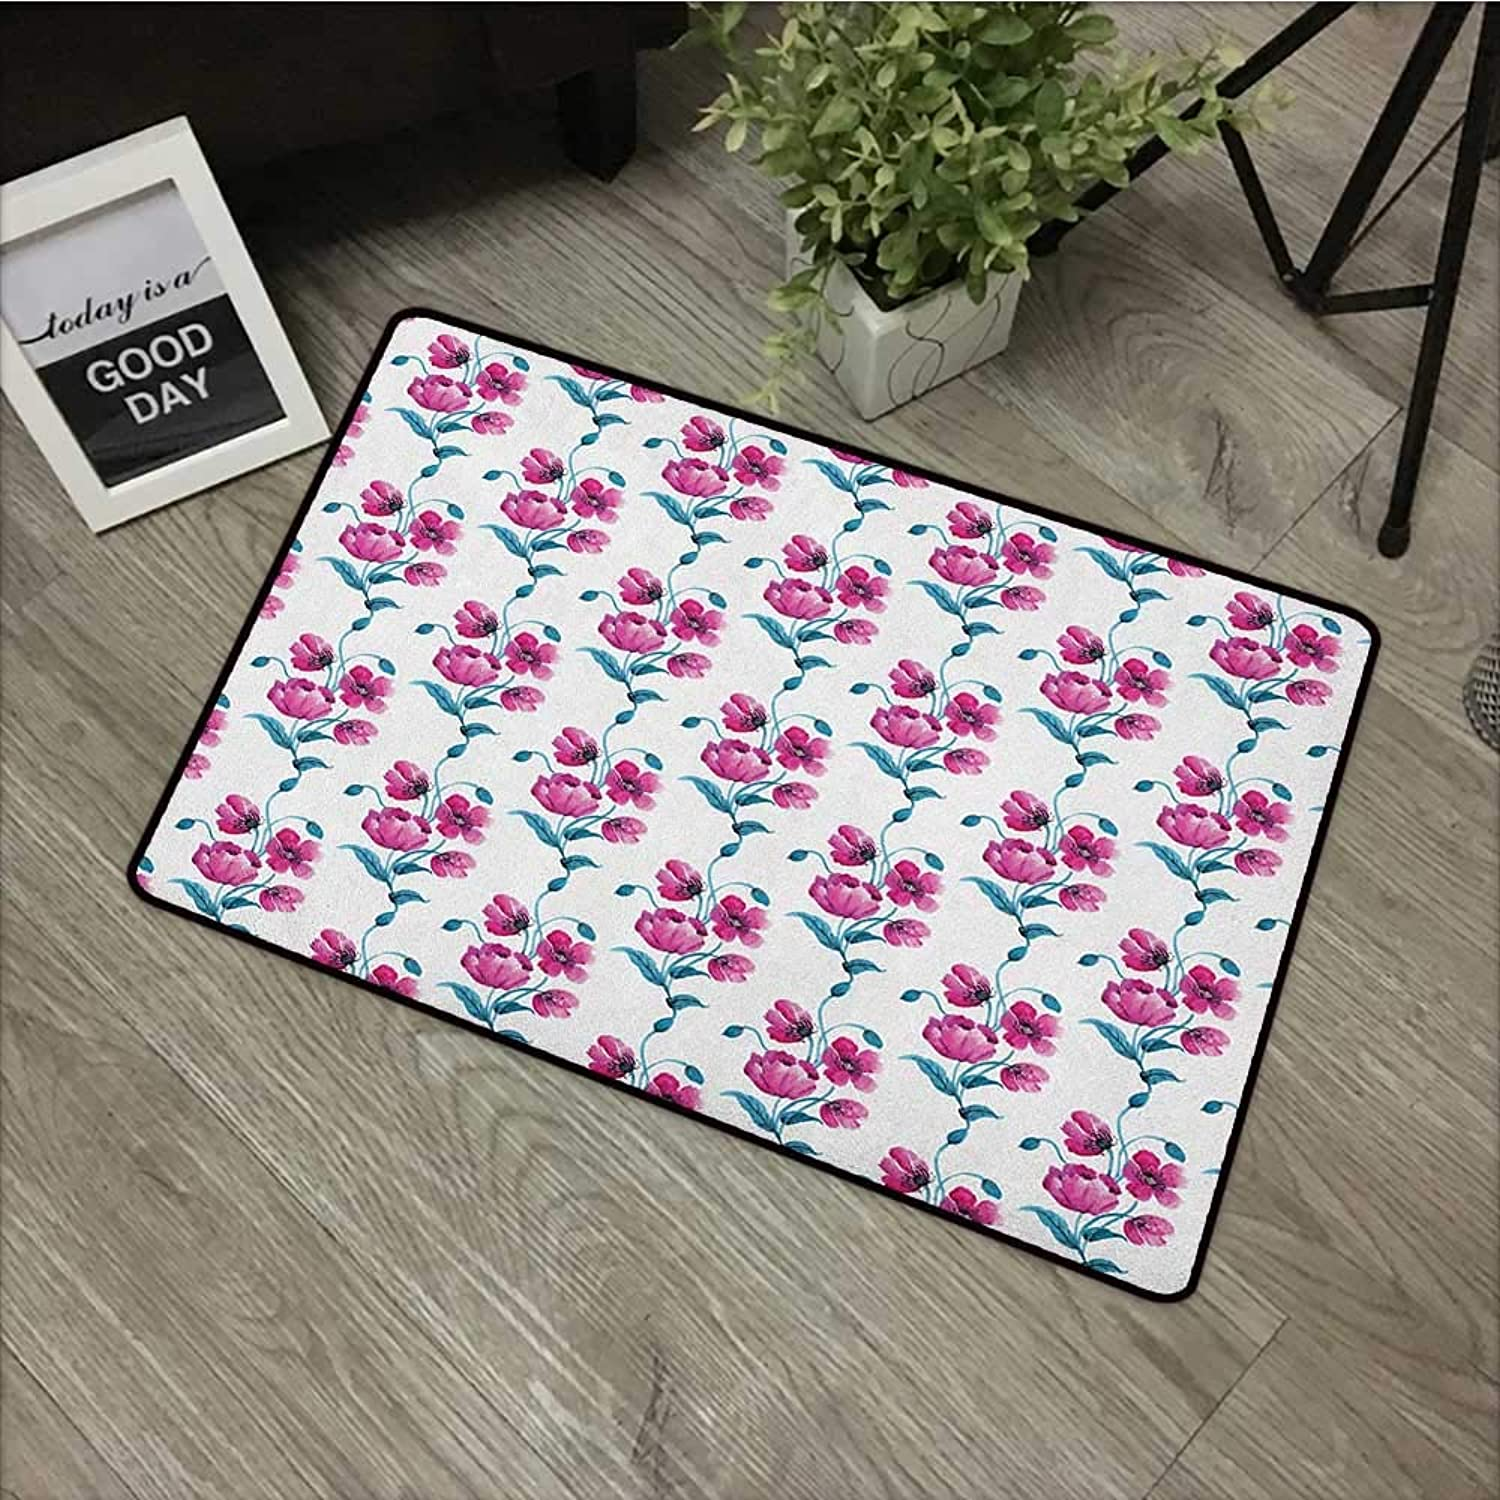 Bathroom Anti-Slip Door mat W35 x L59 INCH Flower,Poppies Ornamental Vintage Style Design Leaves Buds Botany Artwork, Fuchsia and Petrol bluee Easy to Clean, Easy to fold,Non-Slip Door Mat Carpet